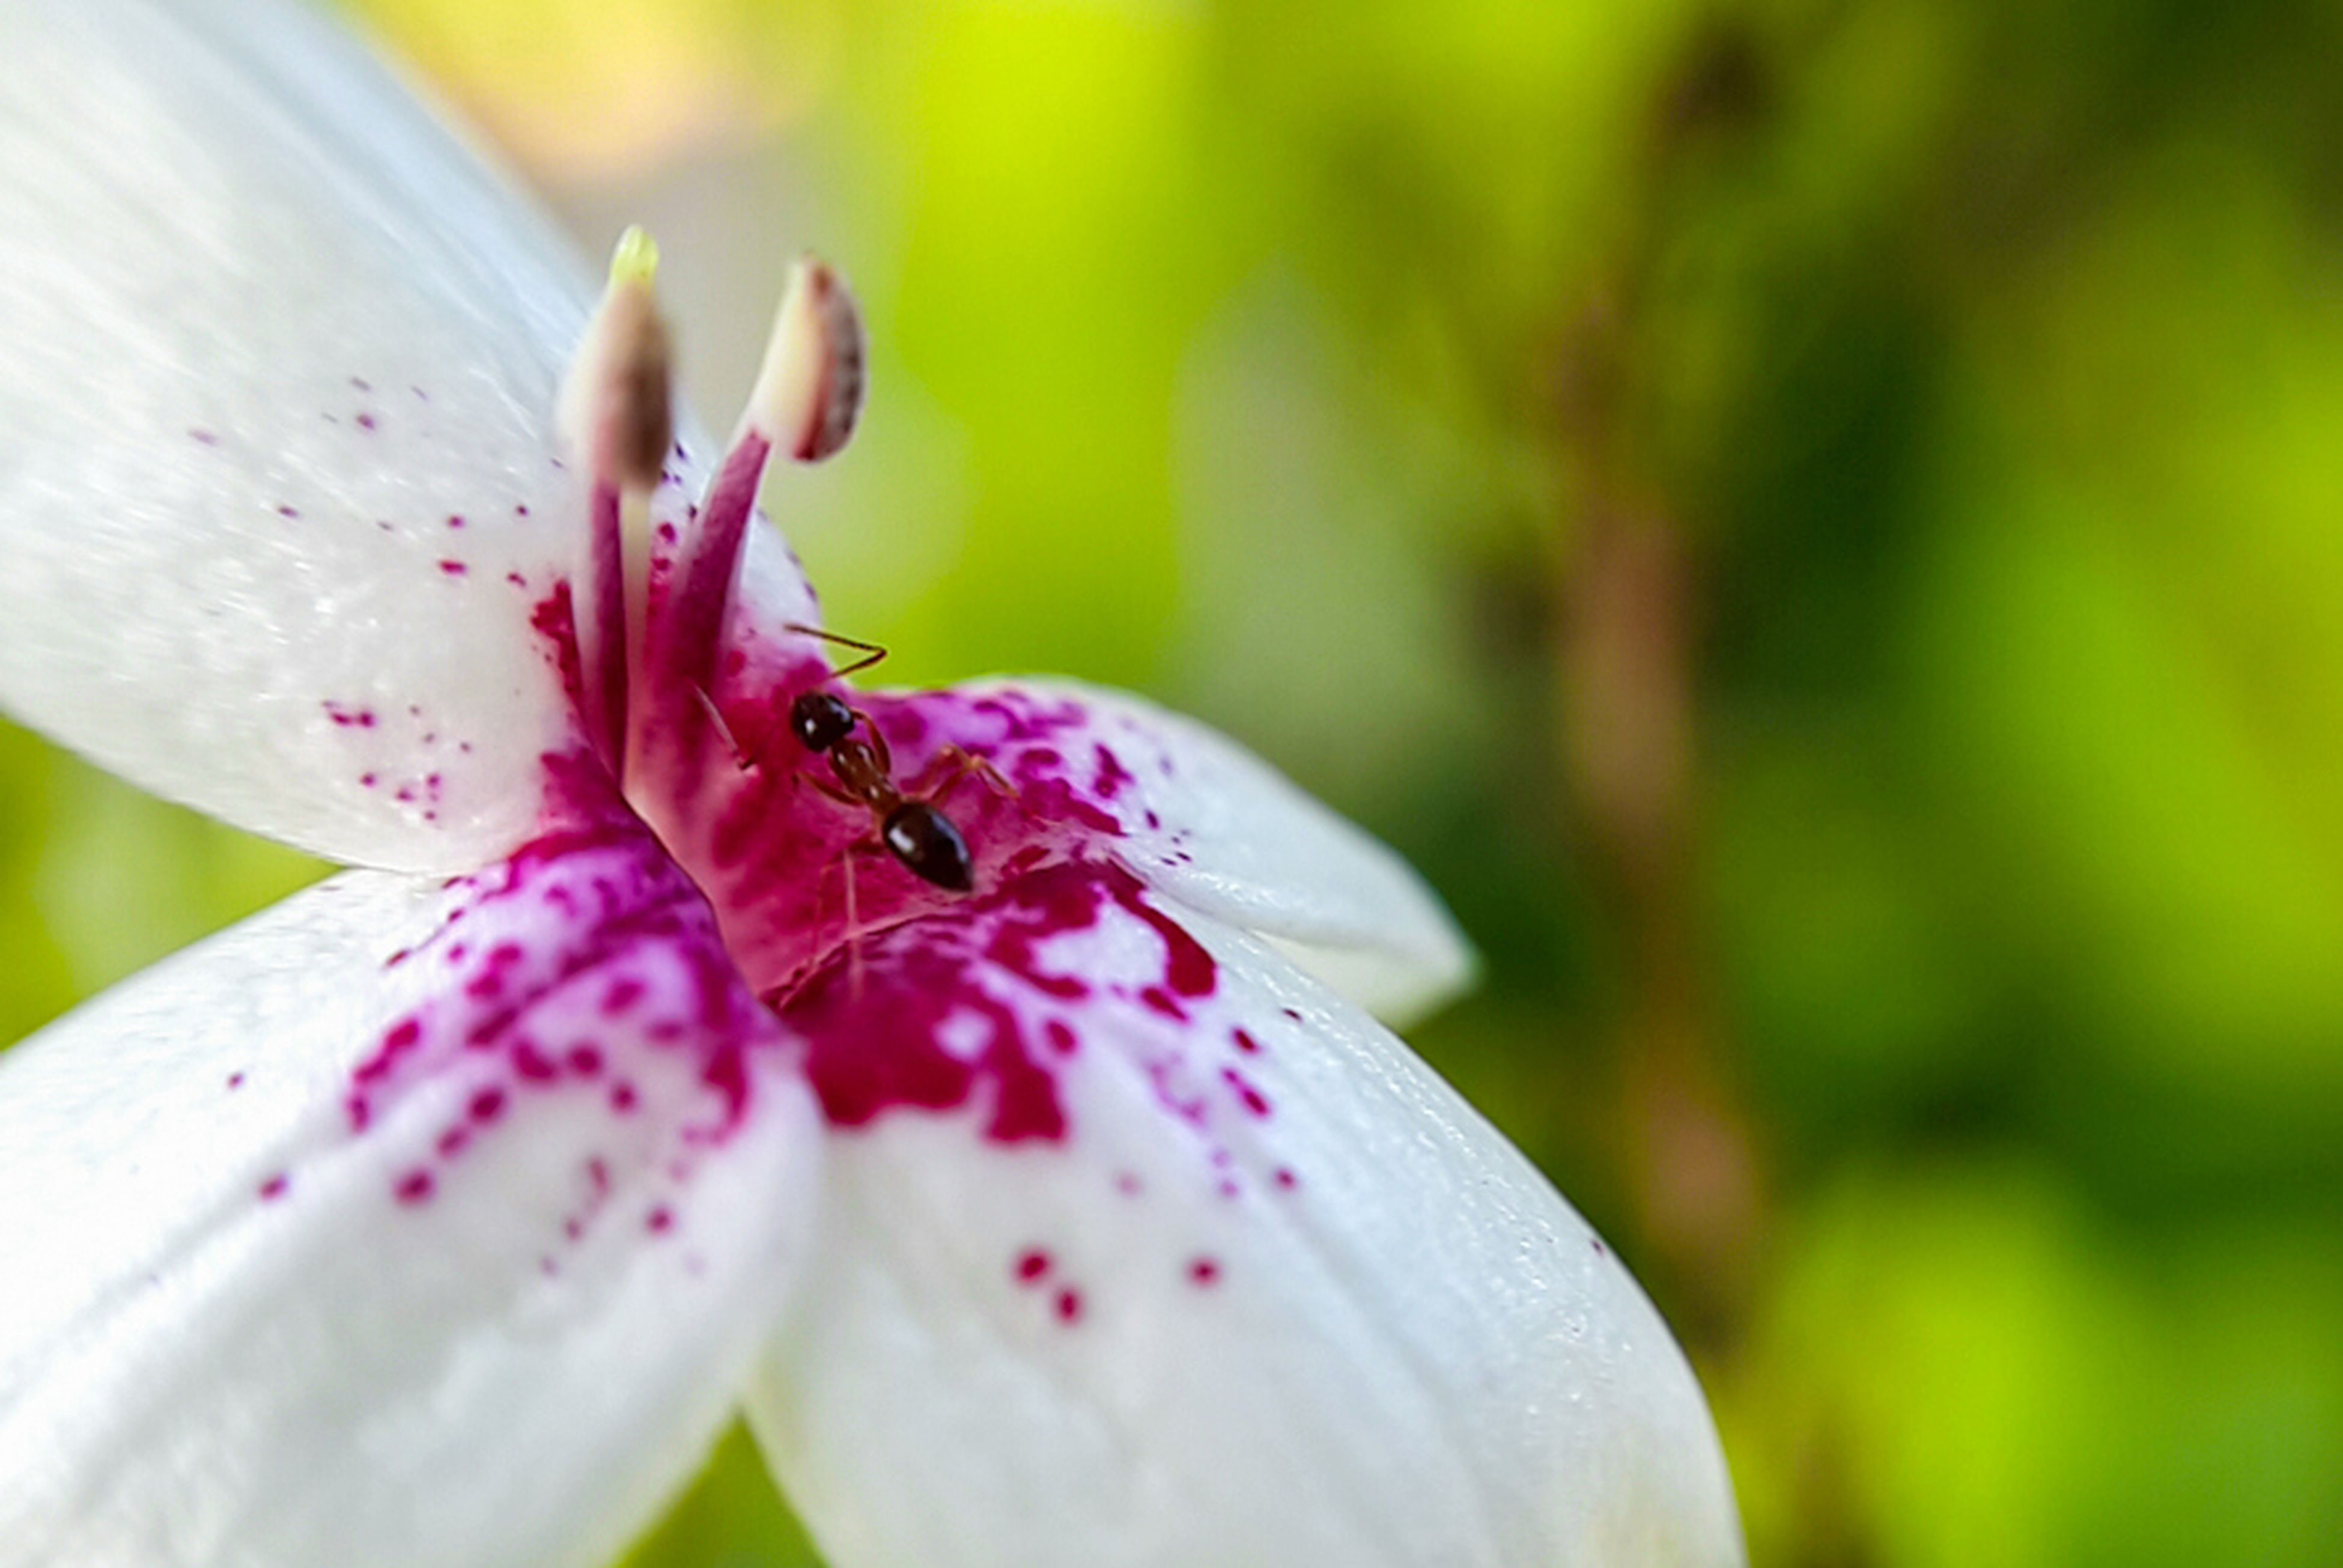 flower, freshness, petal, fragility, flower head, growth, close-up, beauty in nature, focus on foreground, nature, insect, animal themes, white color, animals in the wild, pink color, pollen, wildlife, one animal, blooming, stamen